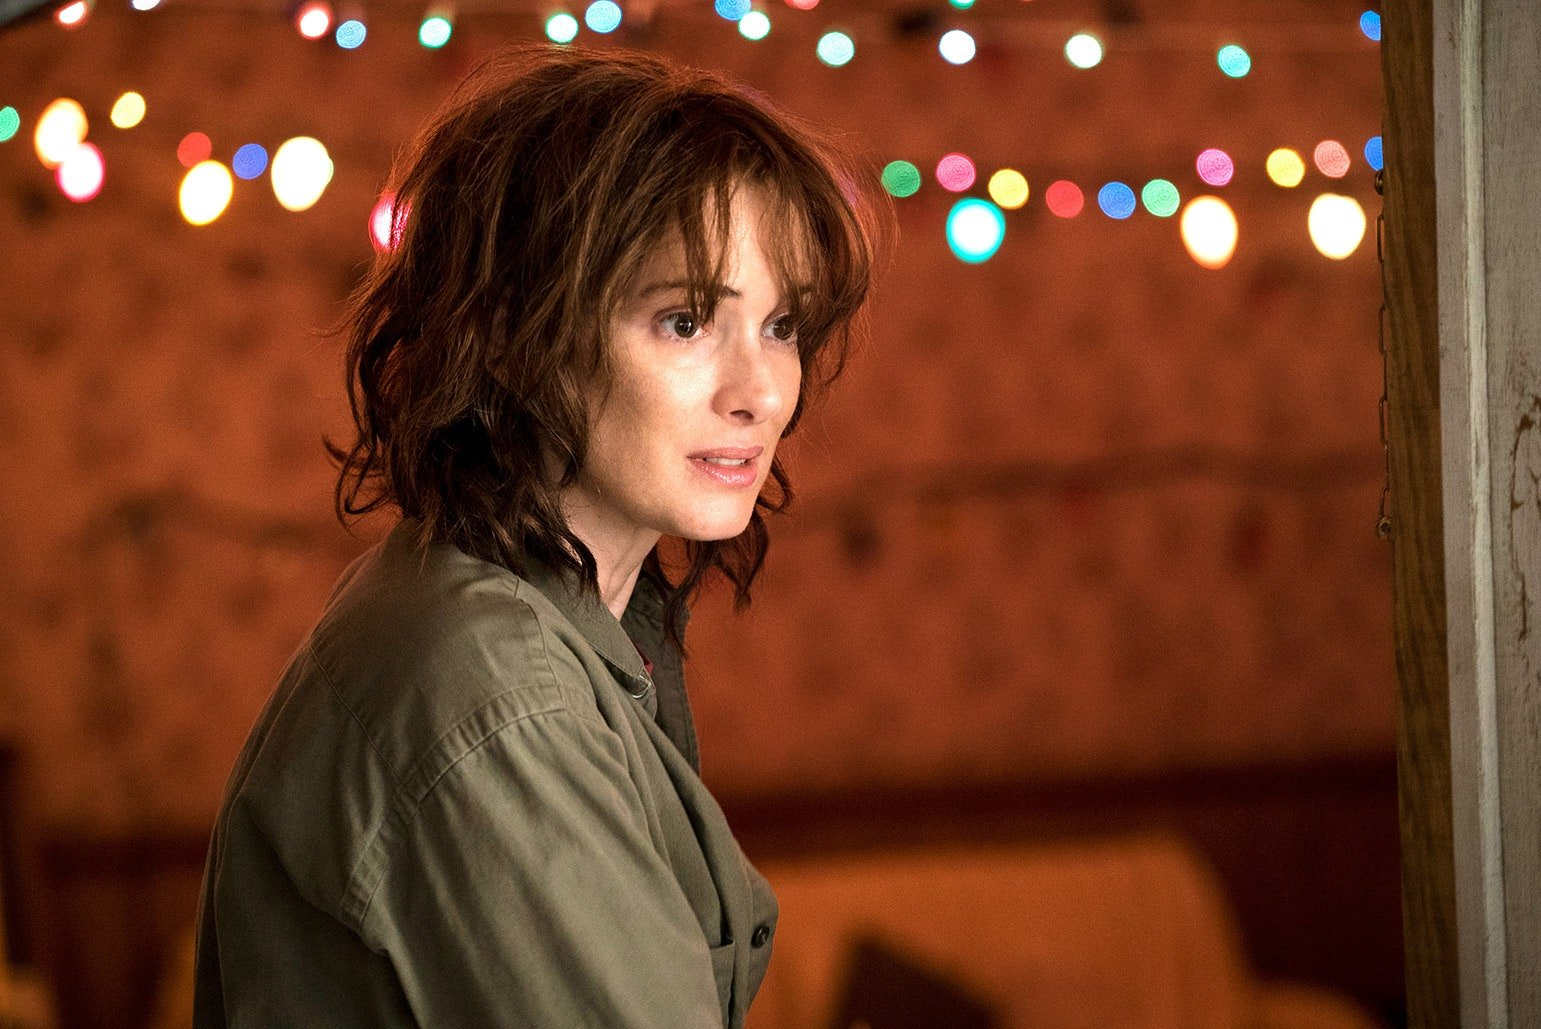 3 35 20 Interesting Facts About Winona Ryder